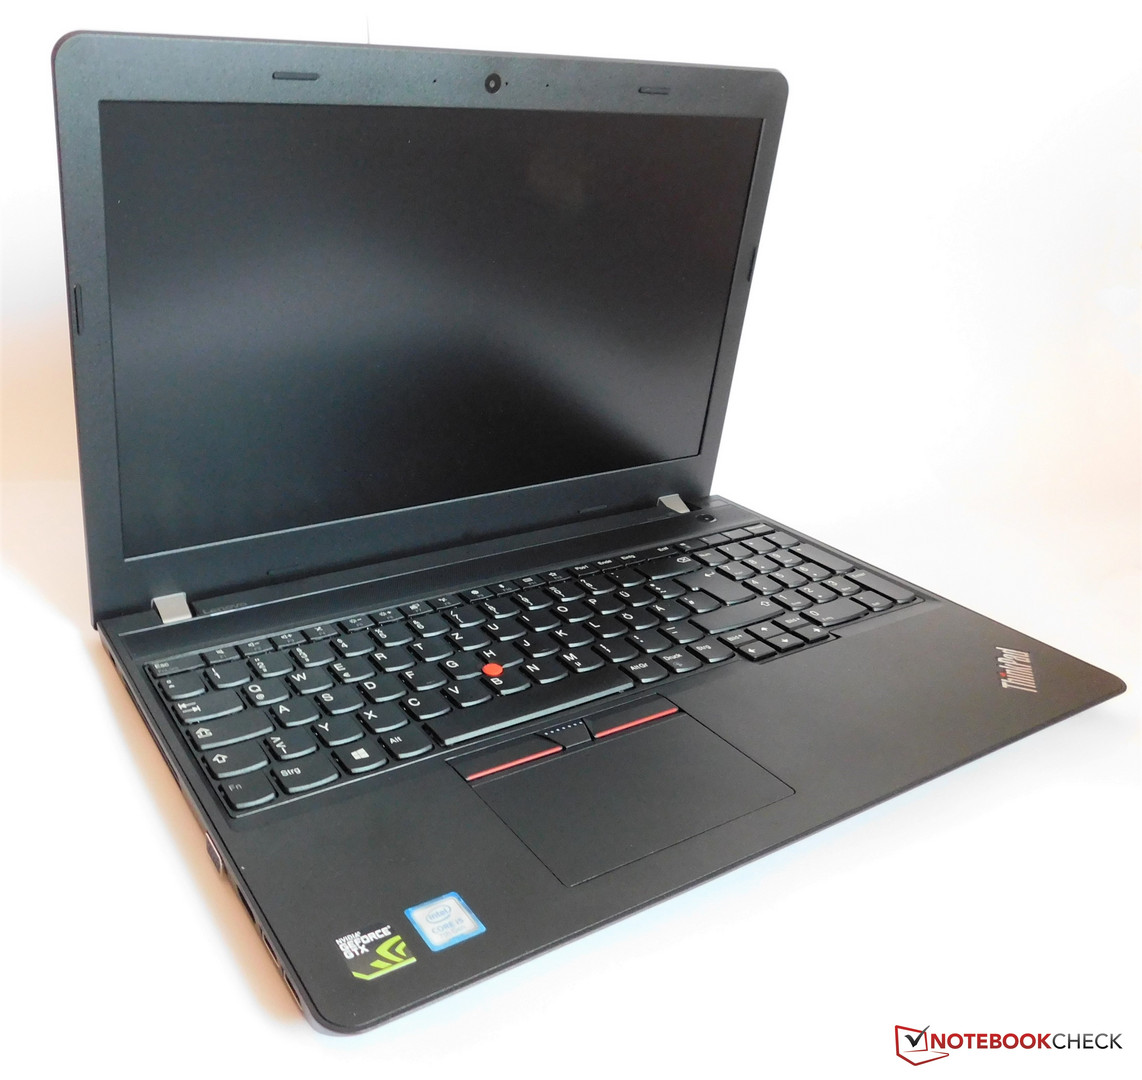 compare laptops side by side